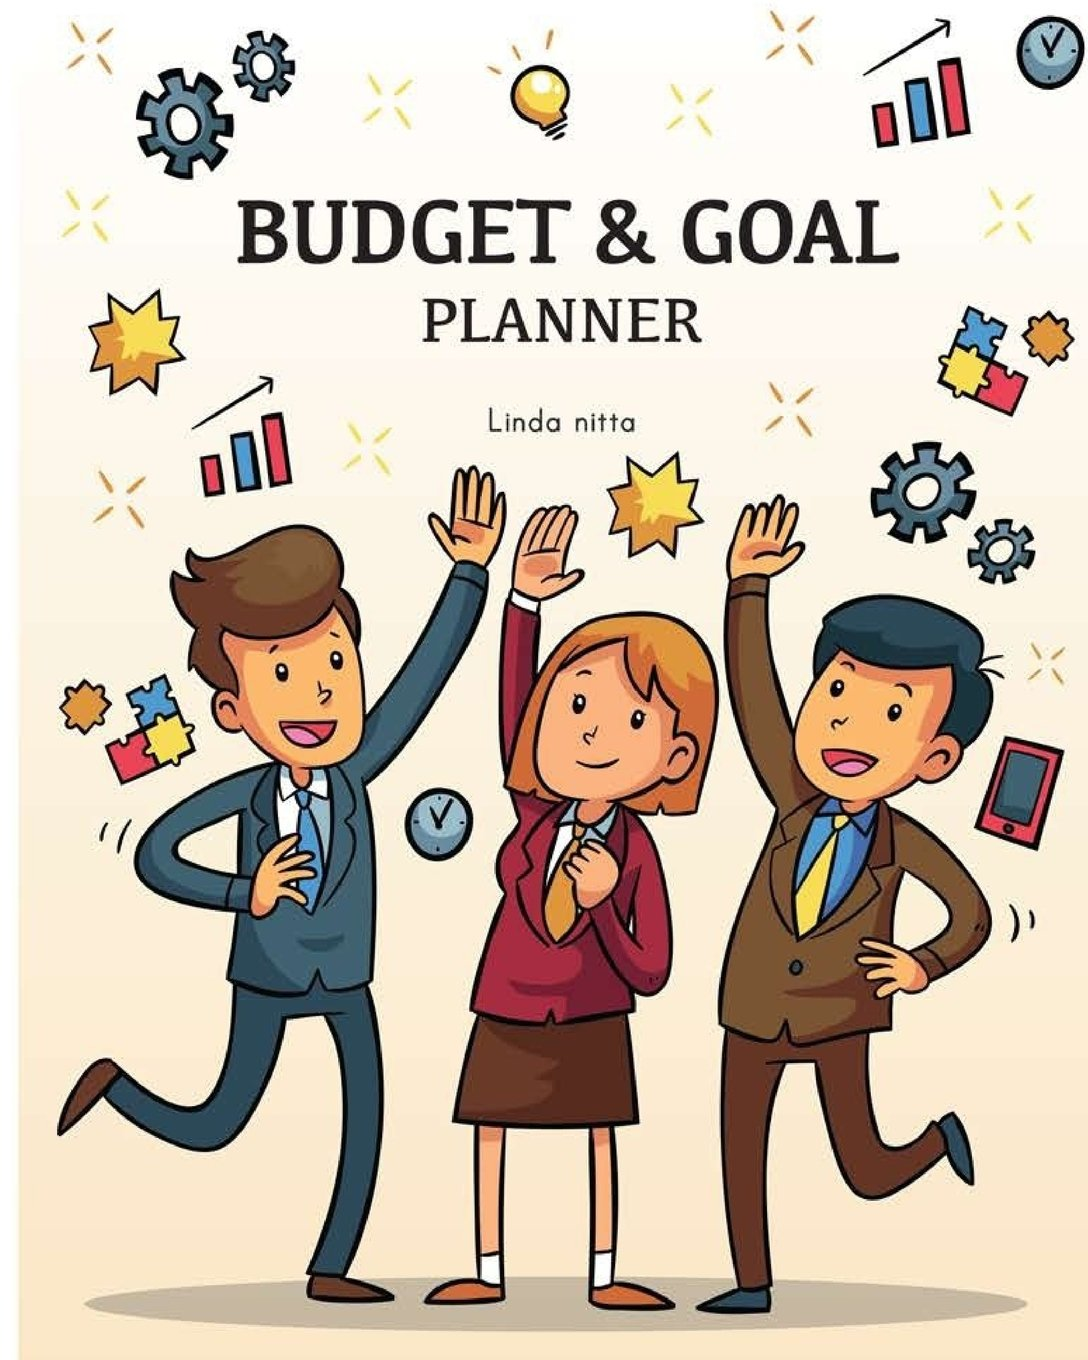 Download Budget & Goal Planner: Budget Planner : Goal Getter , Goal Plan and Month Budget  8x10 inch 120 page ebook